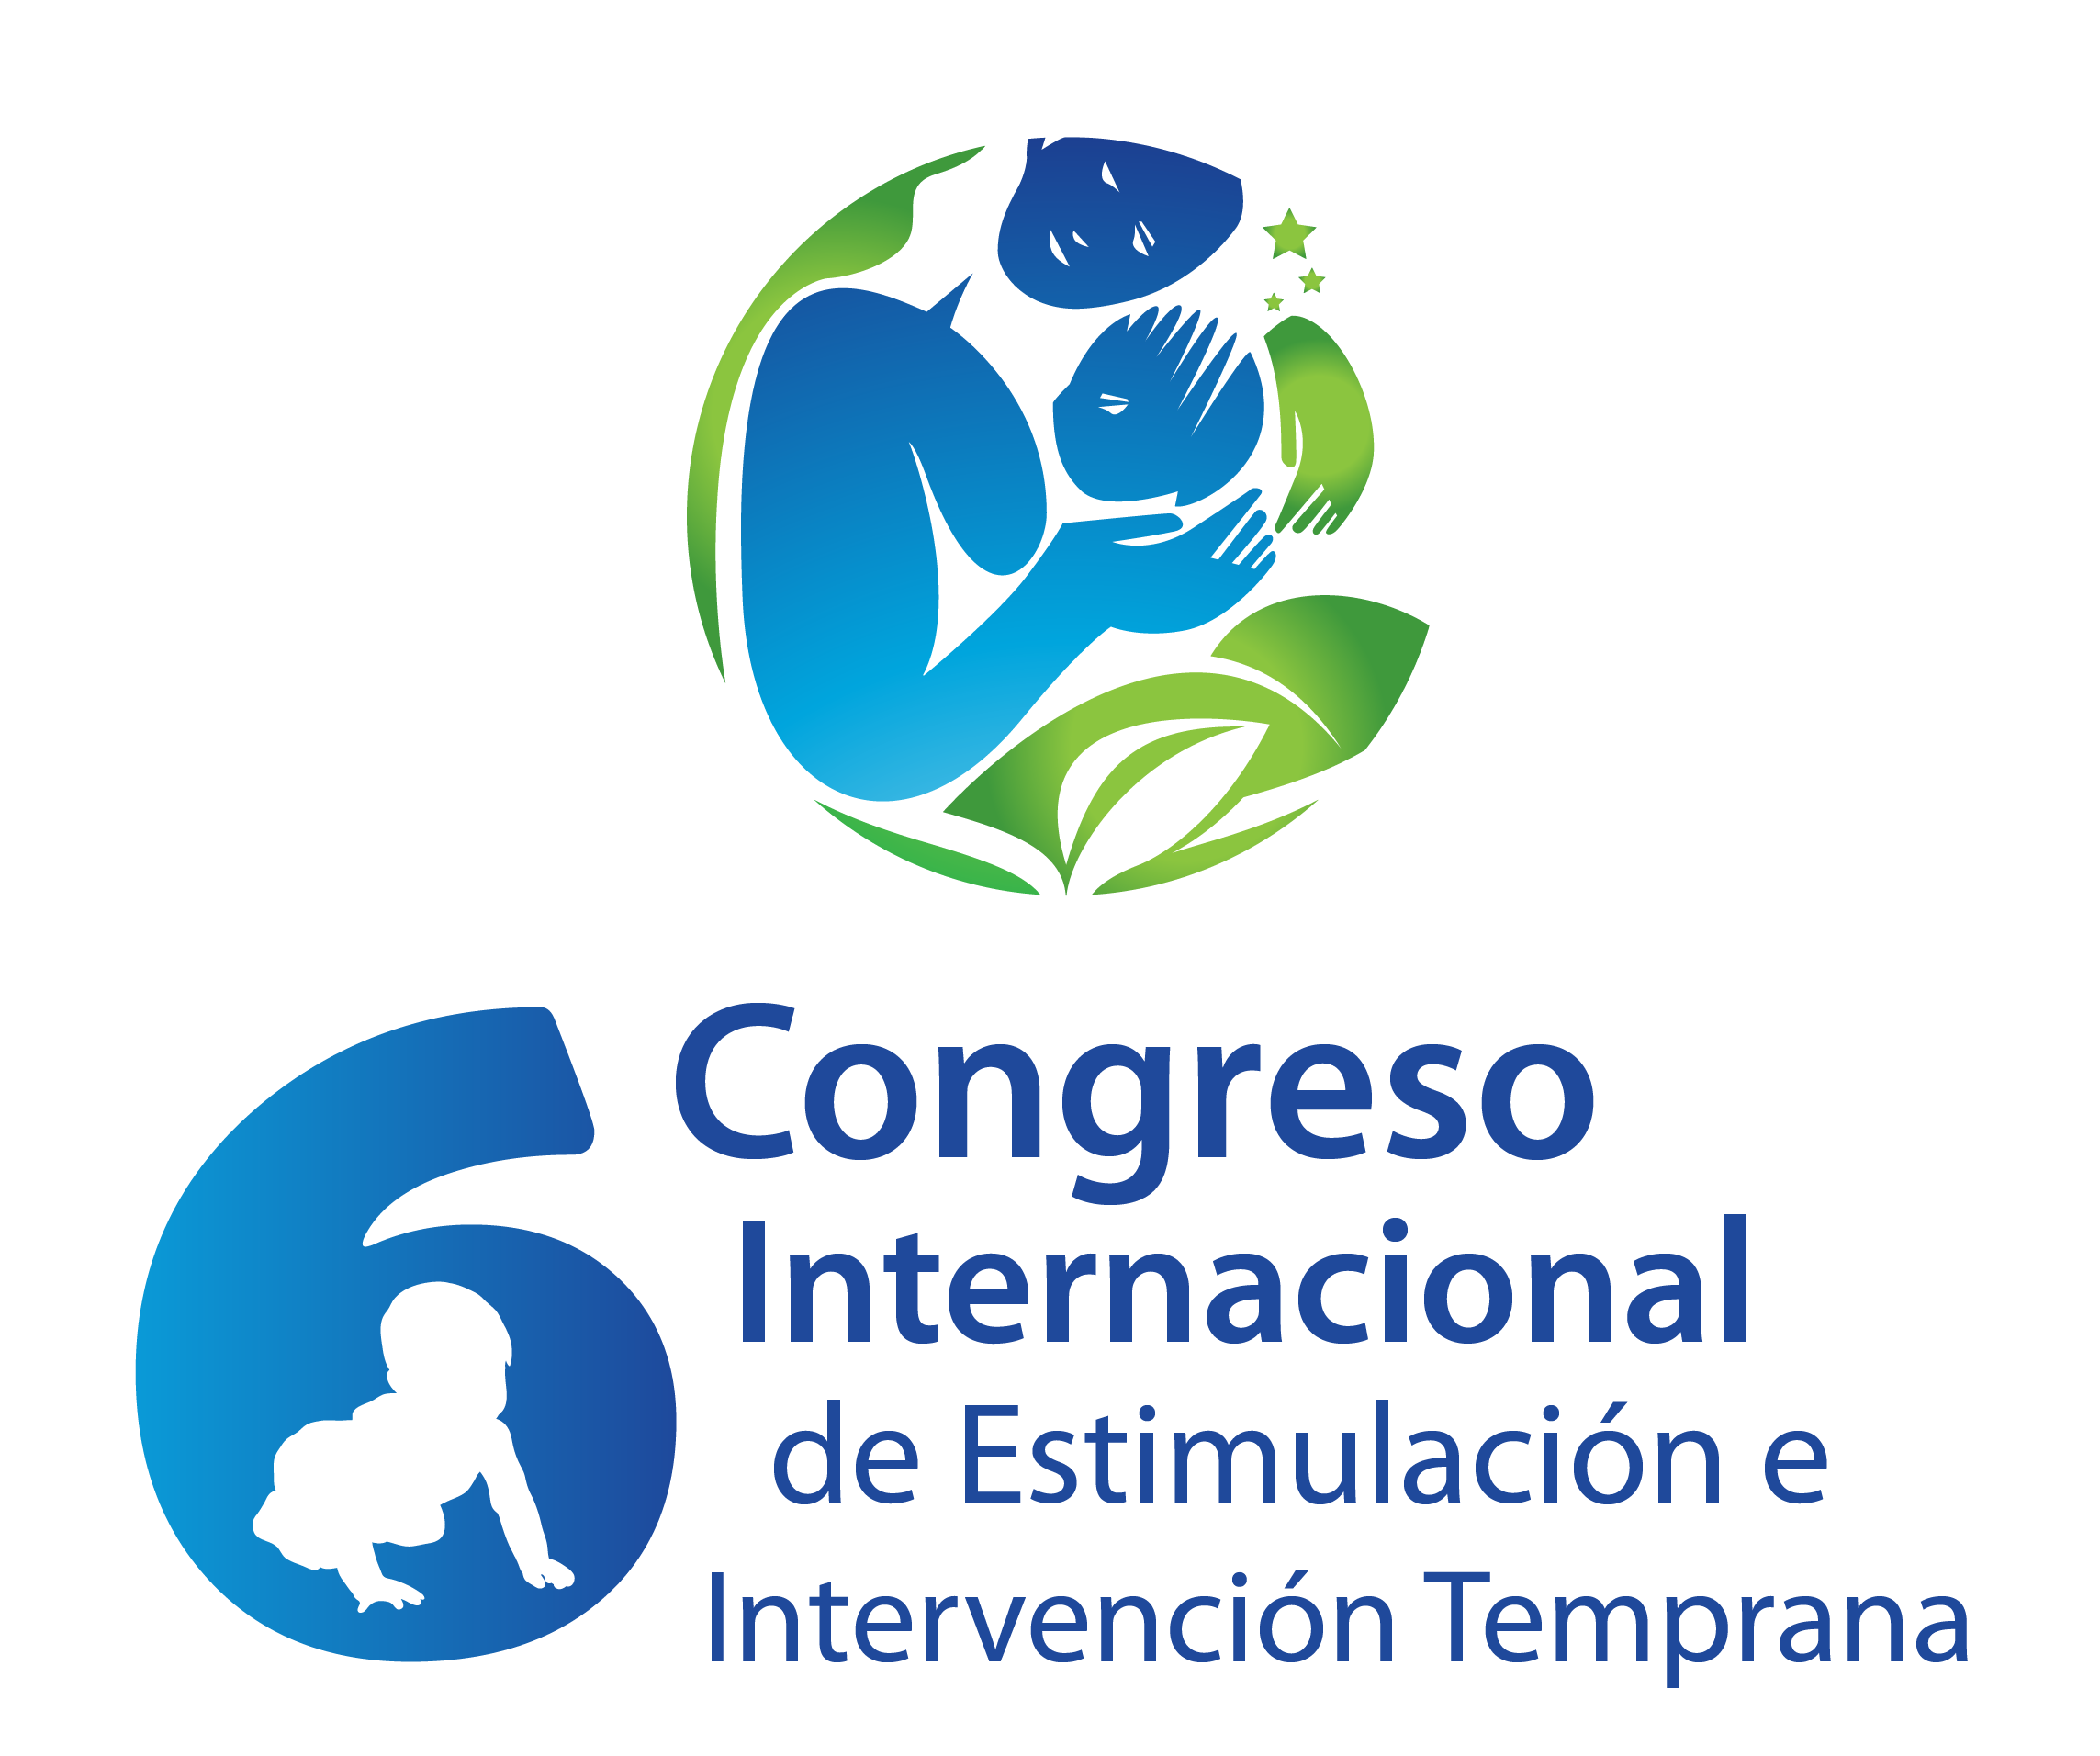 Identidad%206to%20congreso%20vertical 03